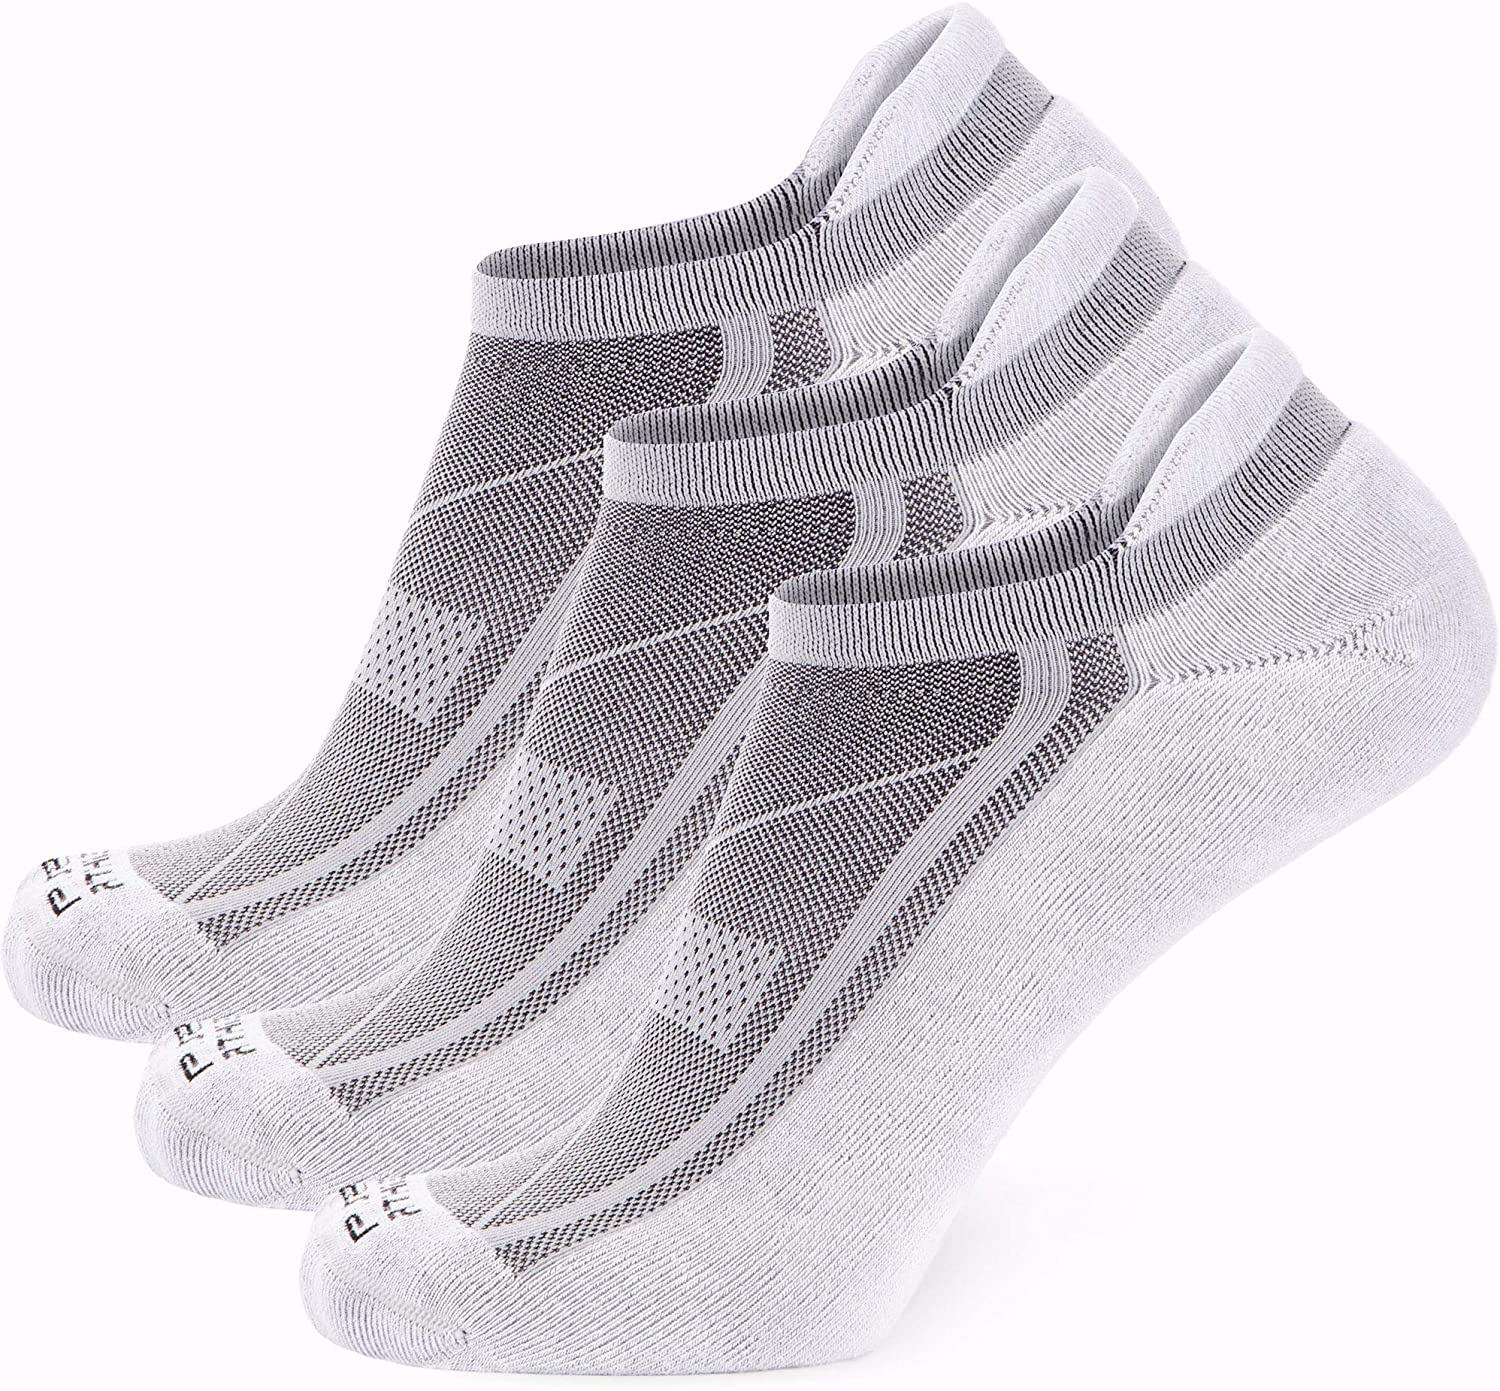 Pure Athlete SOCKSHOSIERY メンズ